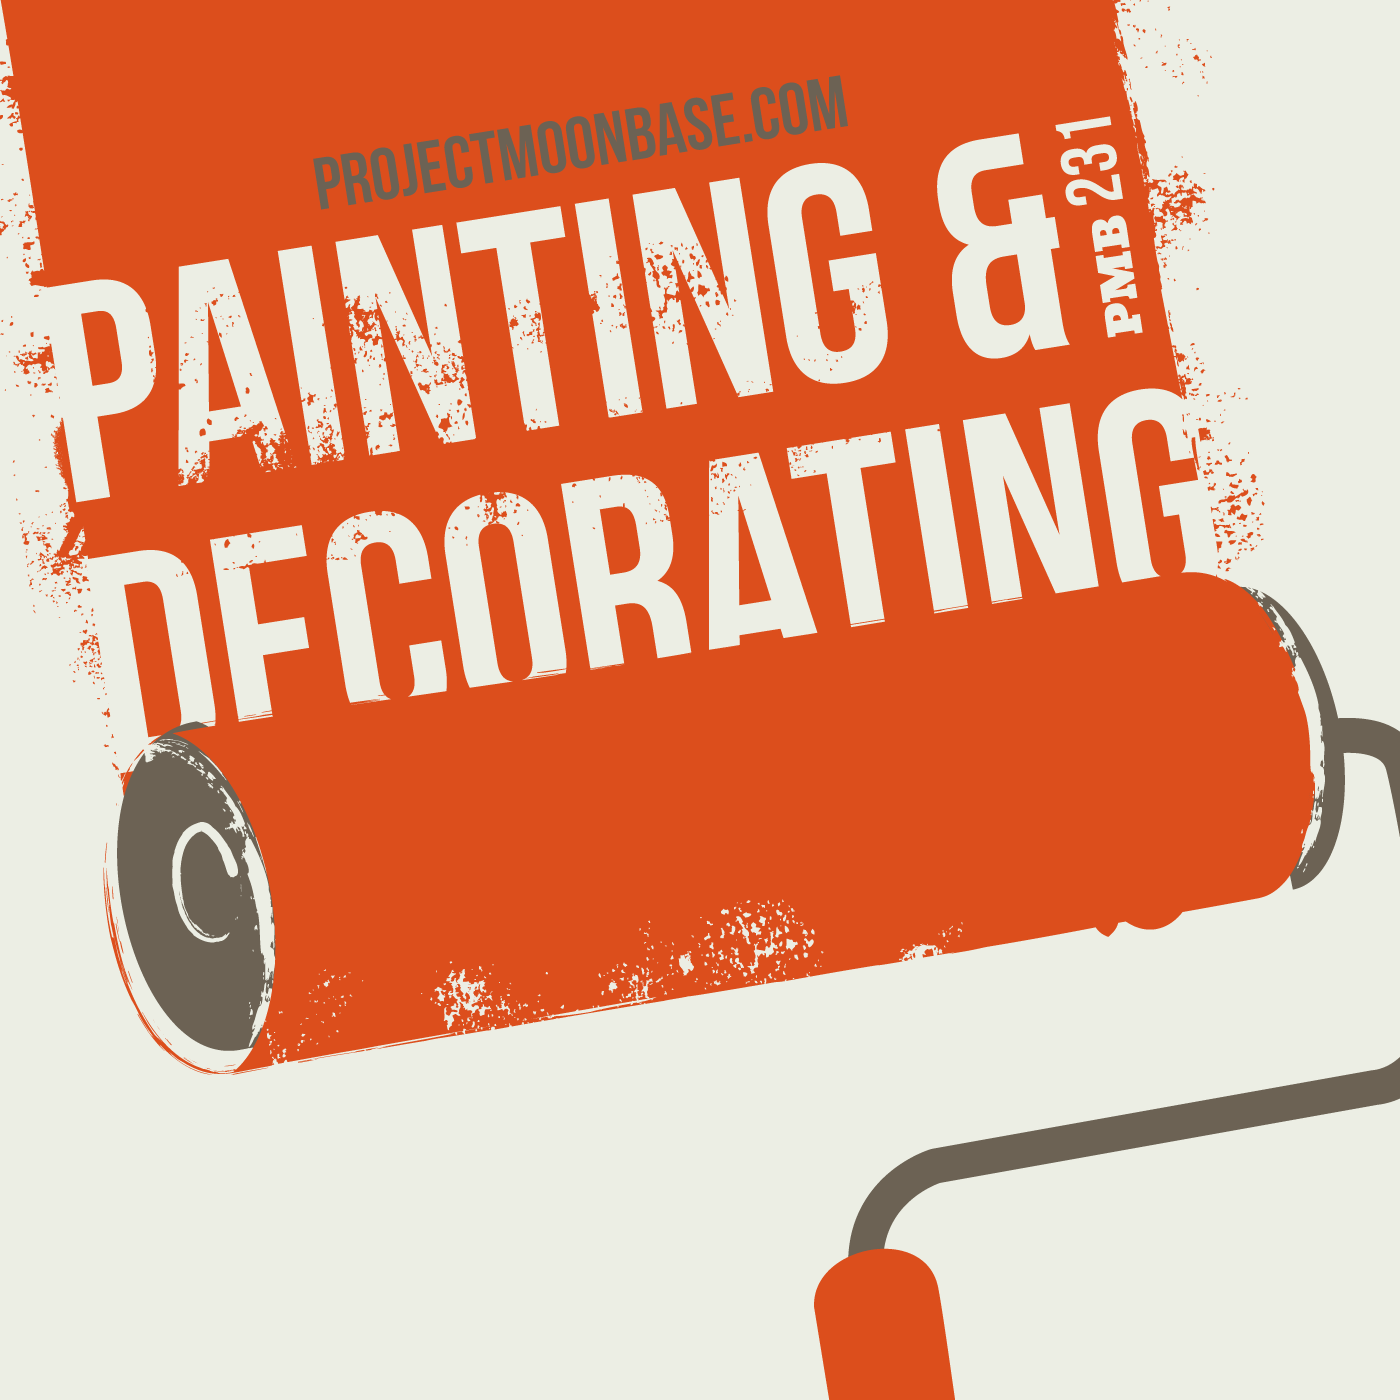 PMB231: Painting and Decorating